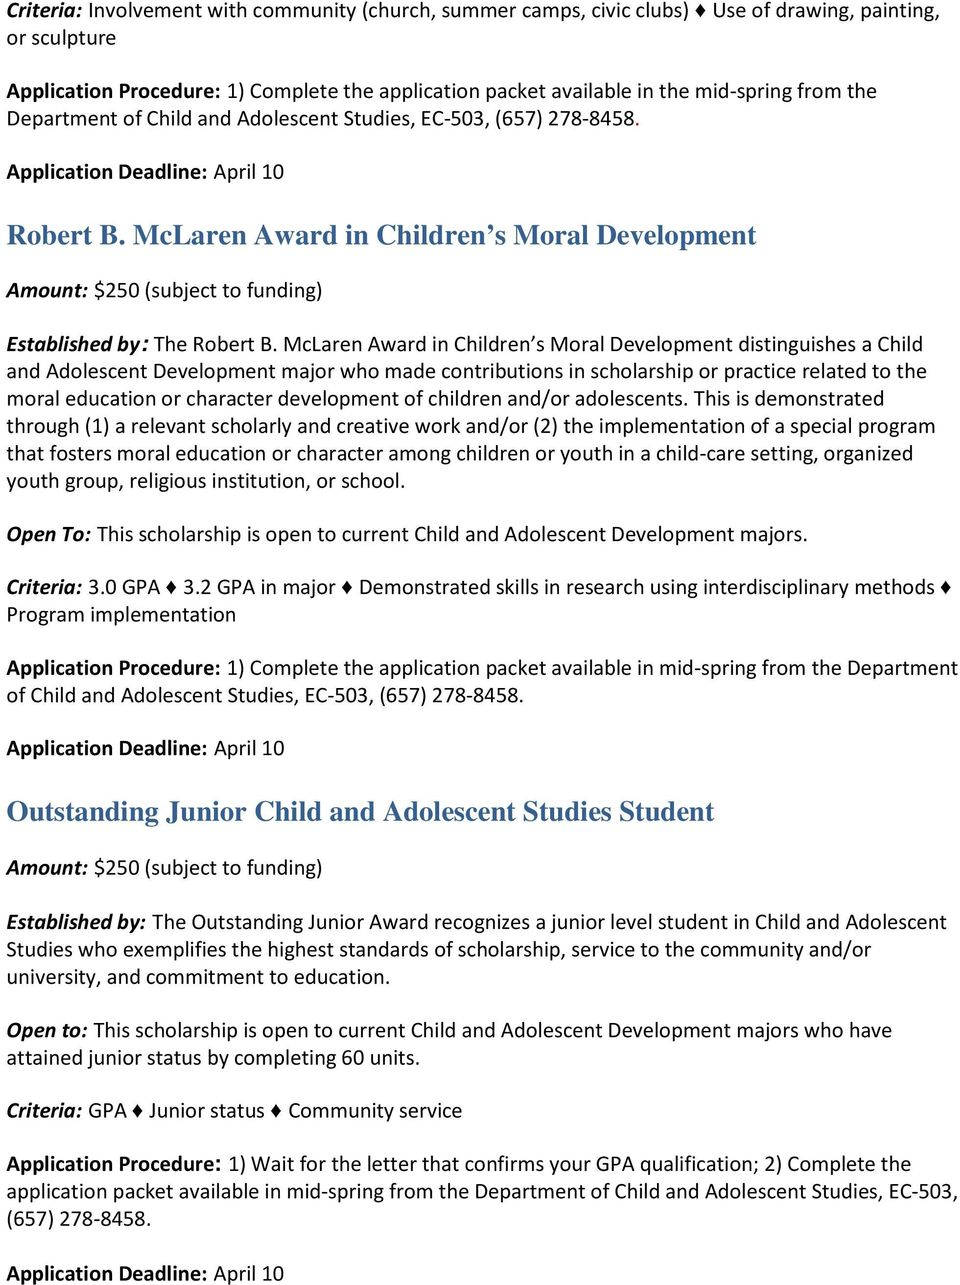 McLaren Award in Children s Moral Development distinguishes a Child and Adolescent Development major who made contributions in scholarship or practice related to the moral education or character